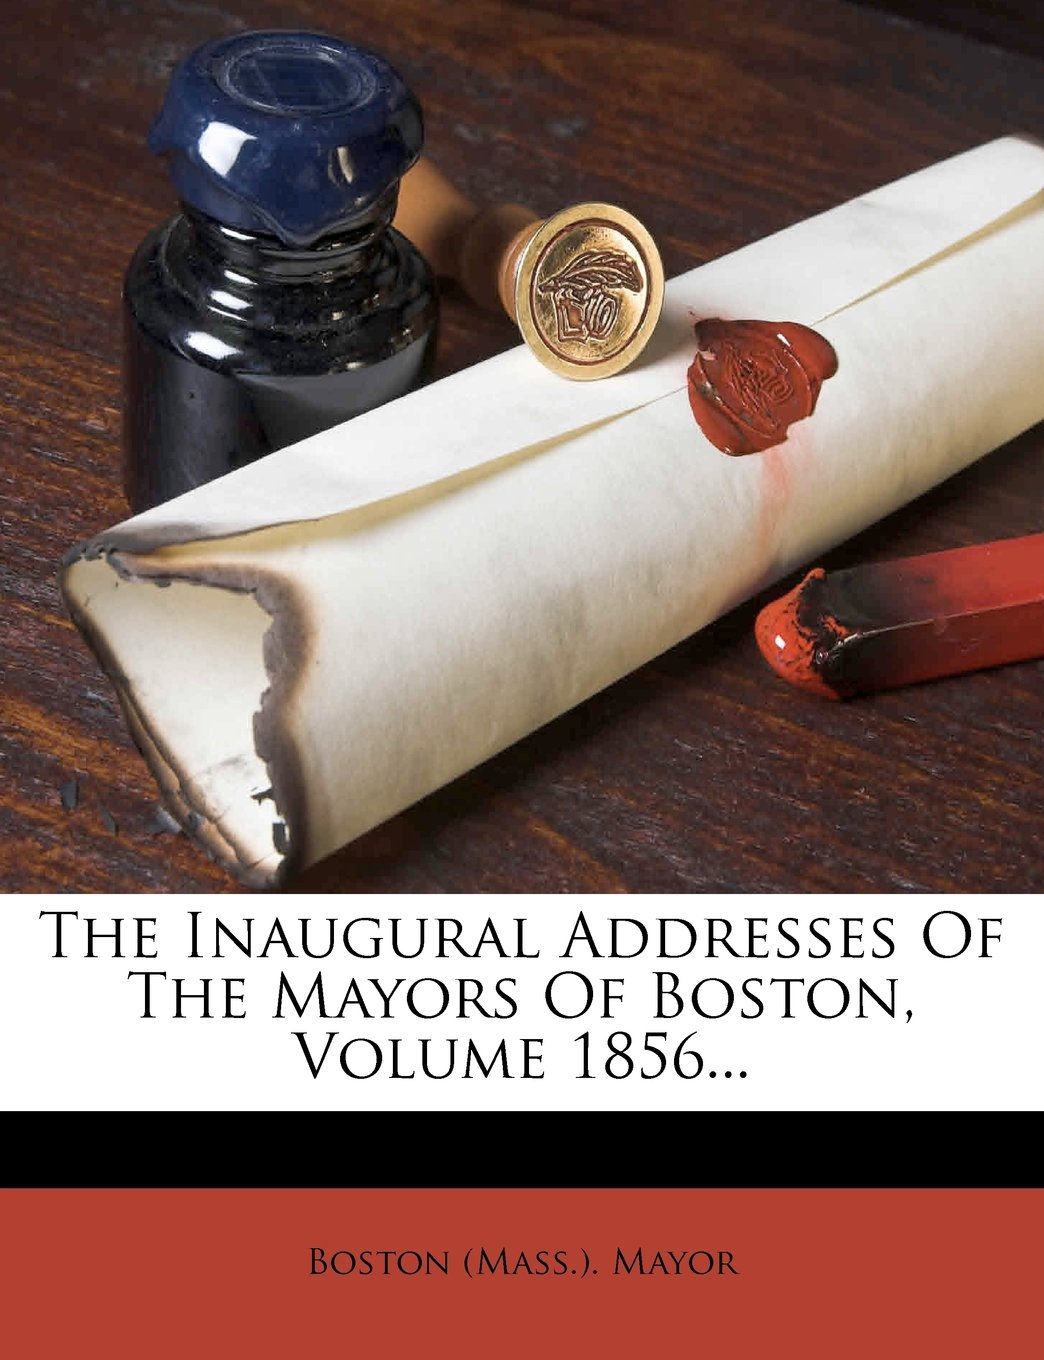 The Inaugural Addresses Of The Mayors Of Boston, Volume 1856... ebook